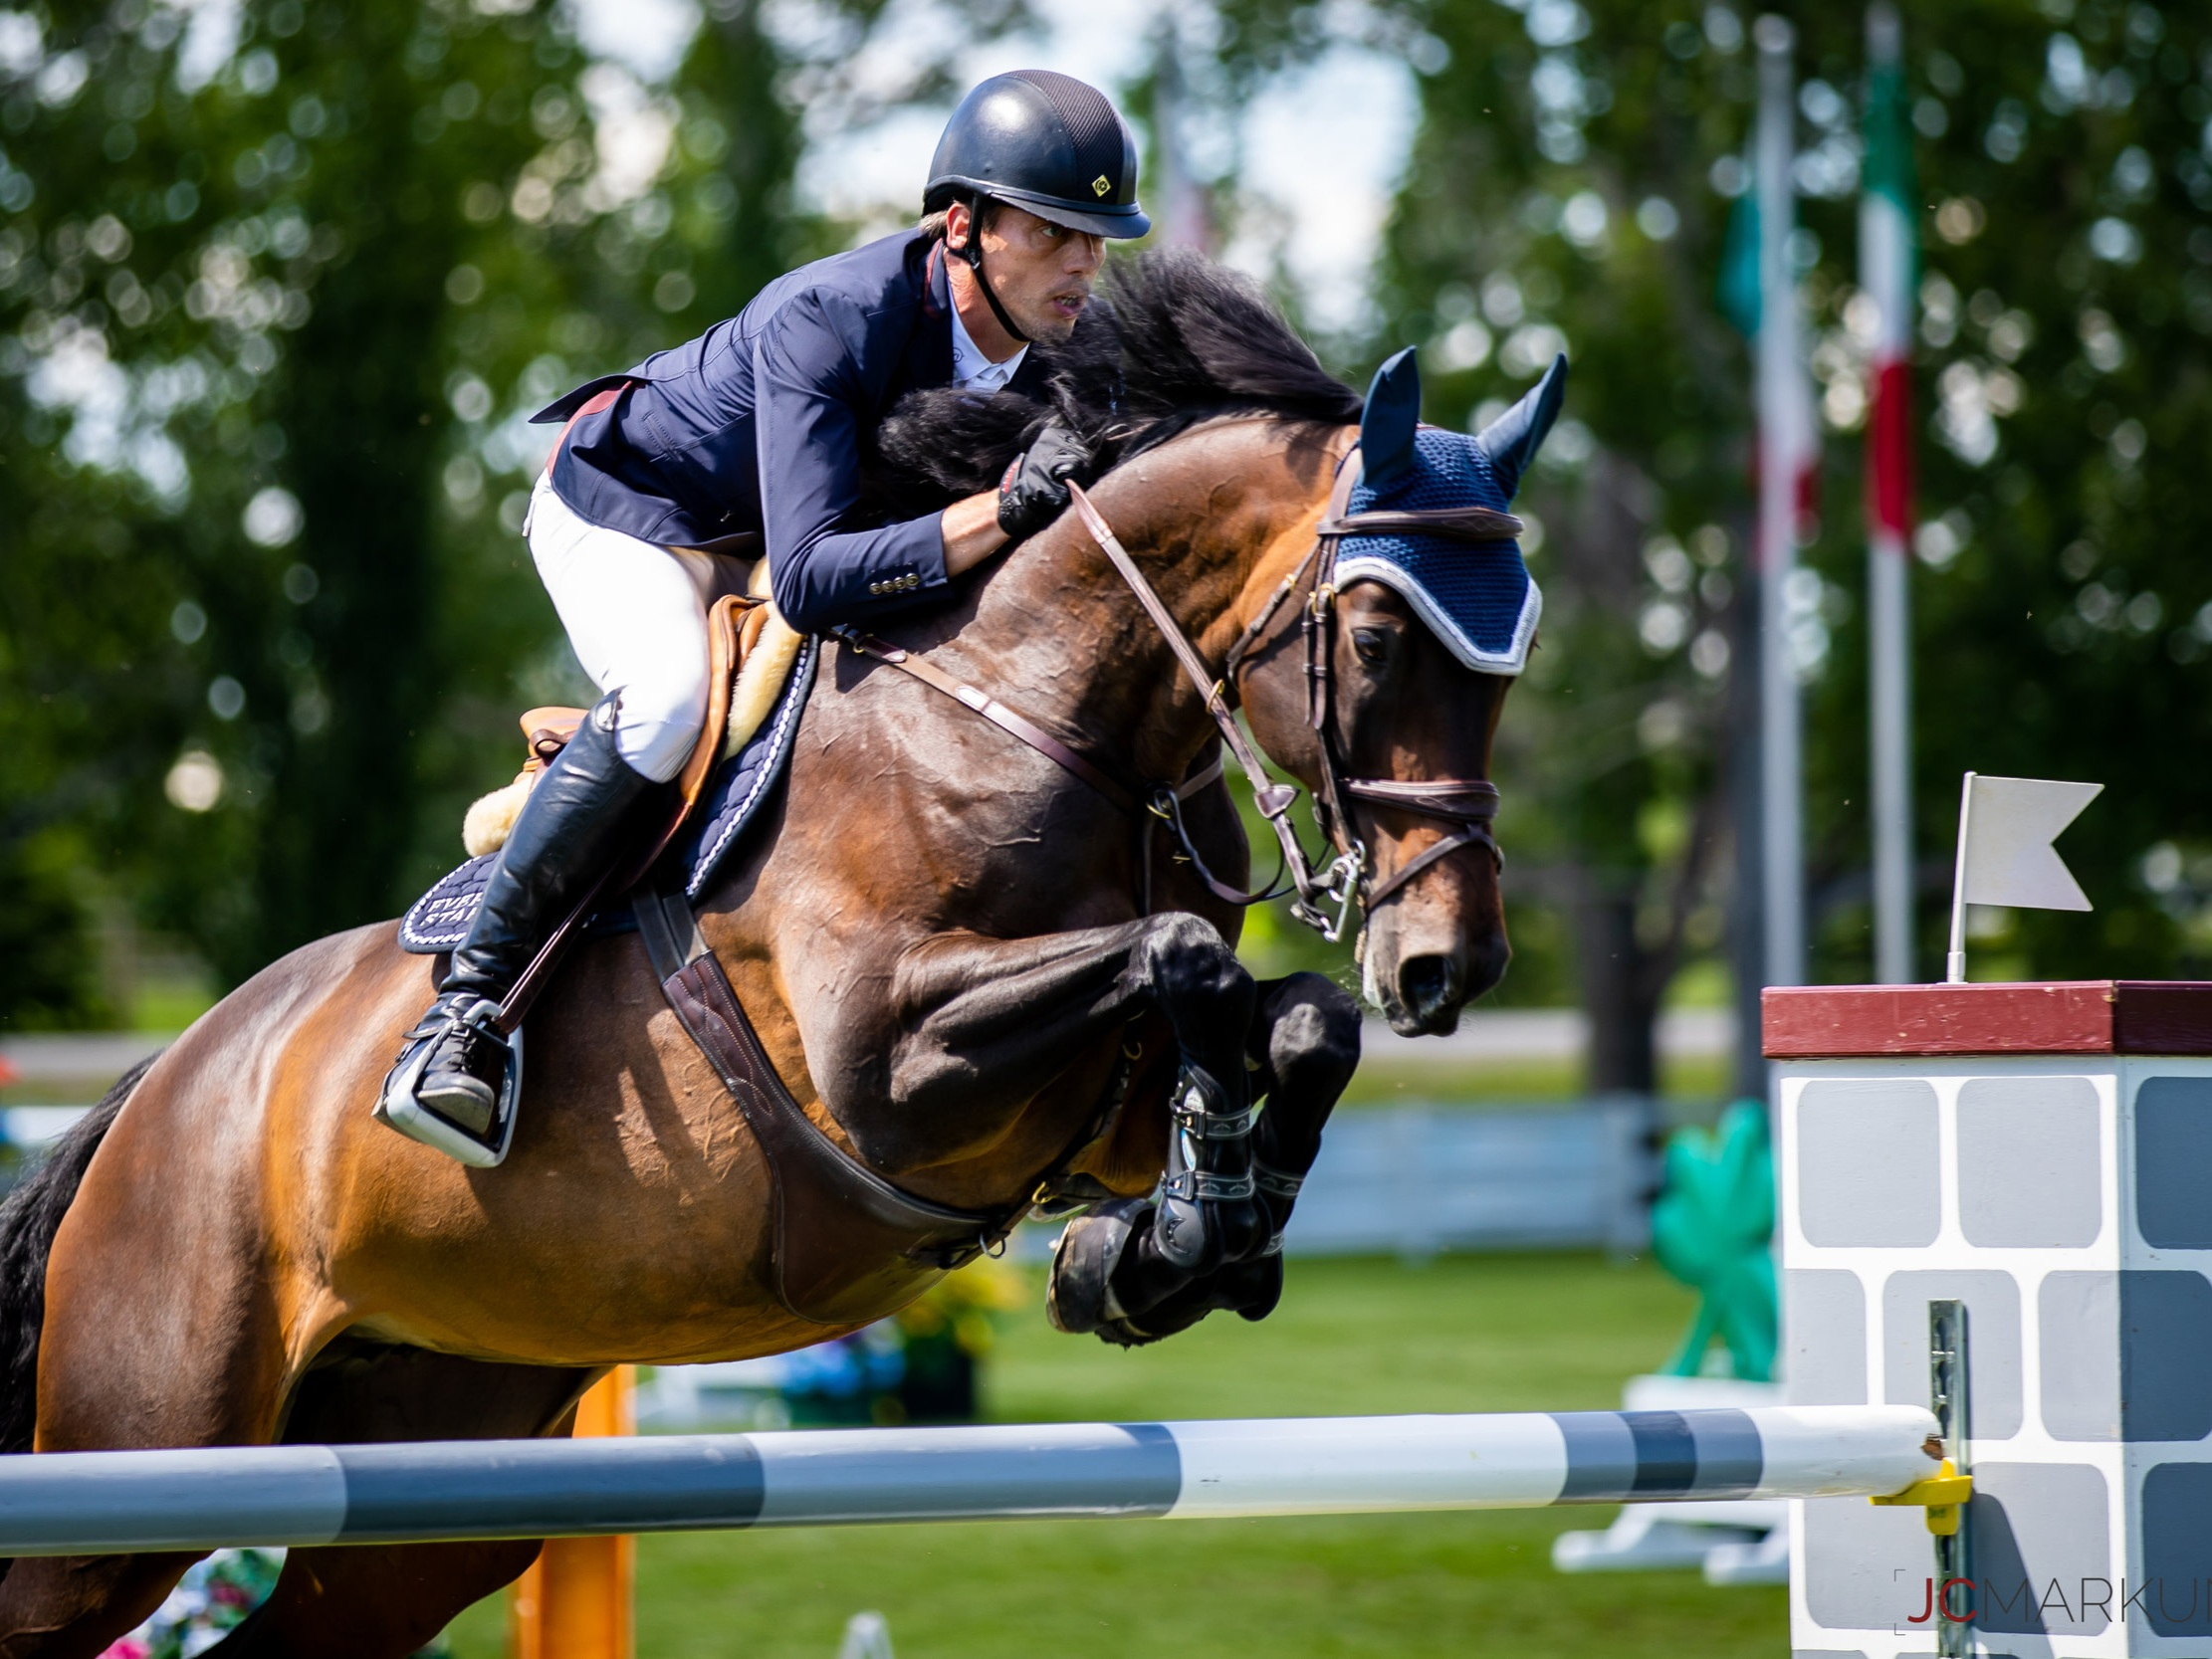 Harrie Smolders and Dolinn at Spruce Meadows CSI 5* by Rolex 2019. Photo by JC Markun.